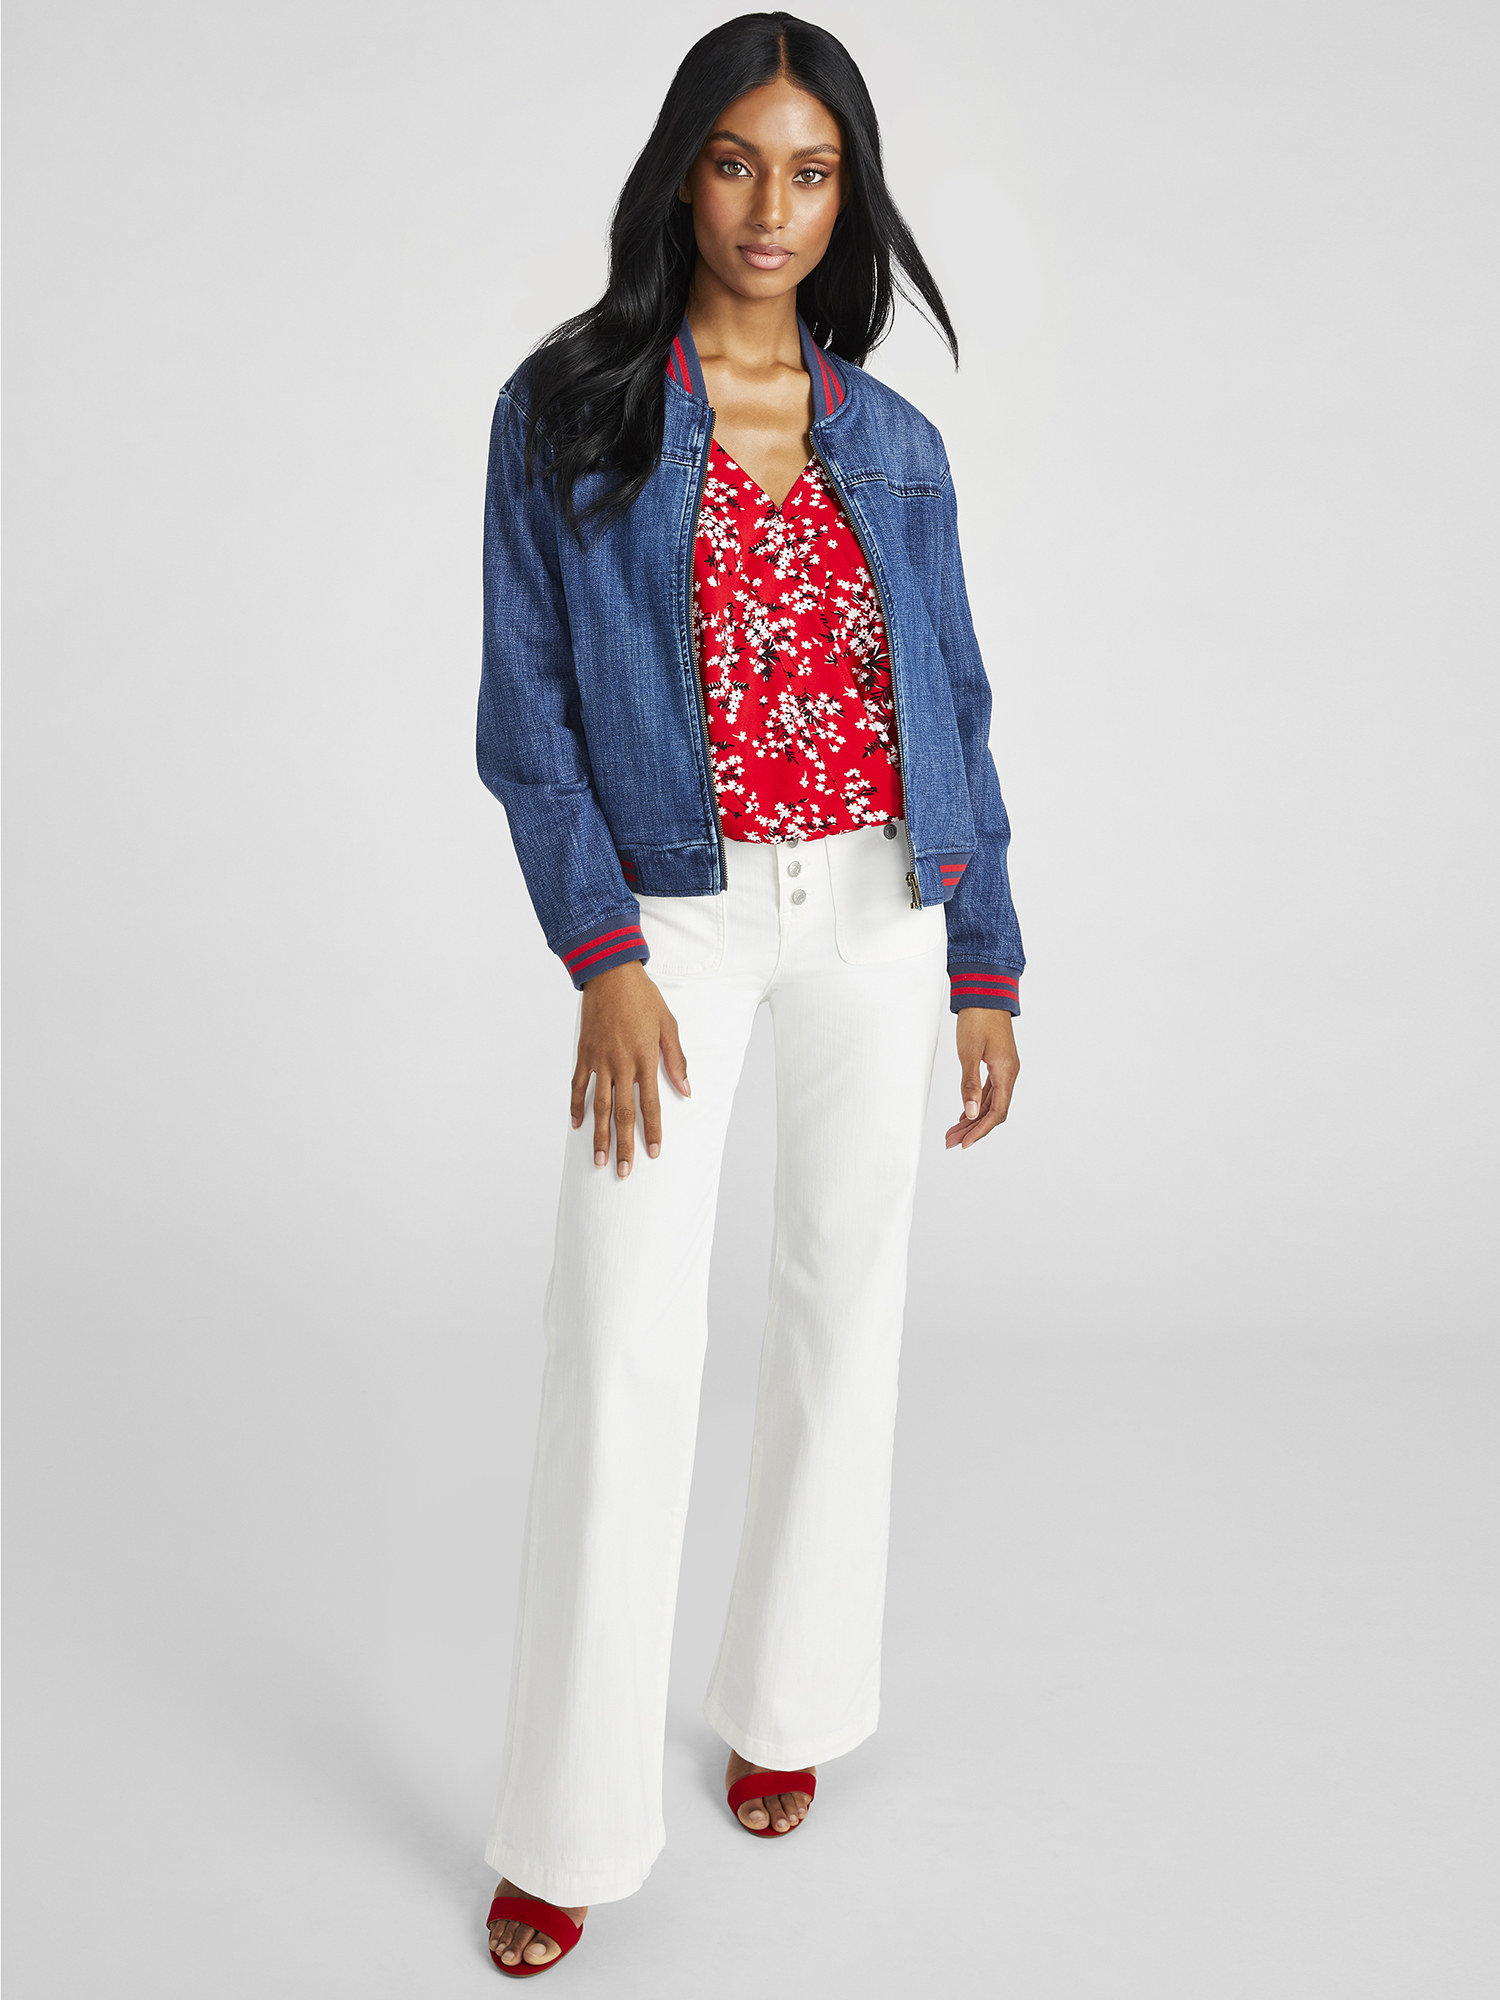 Model wears denim bomber jacket with red top, white pants and red heels